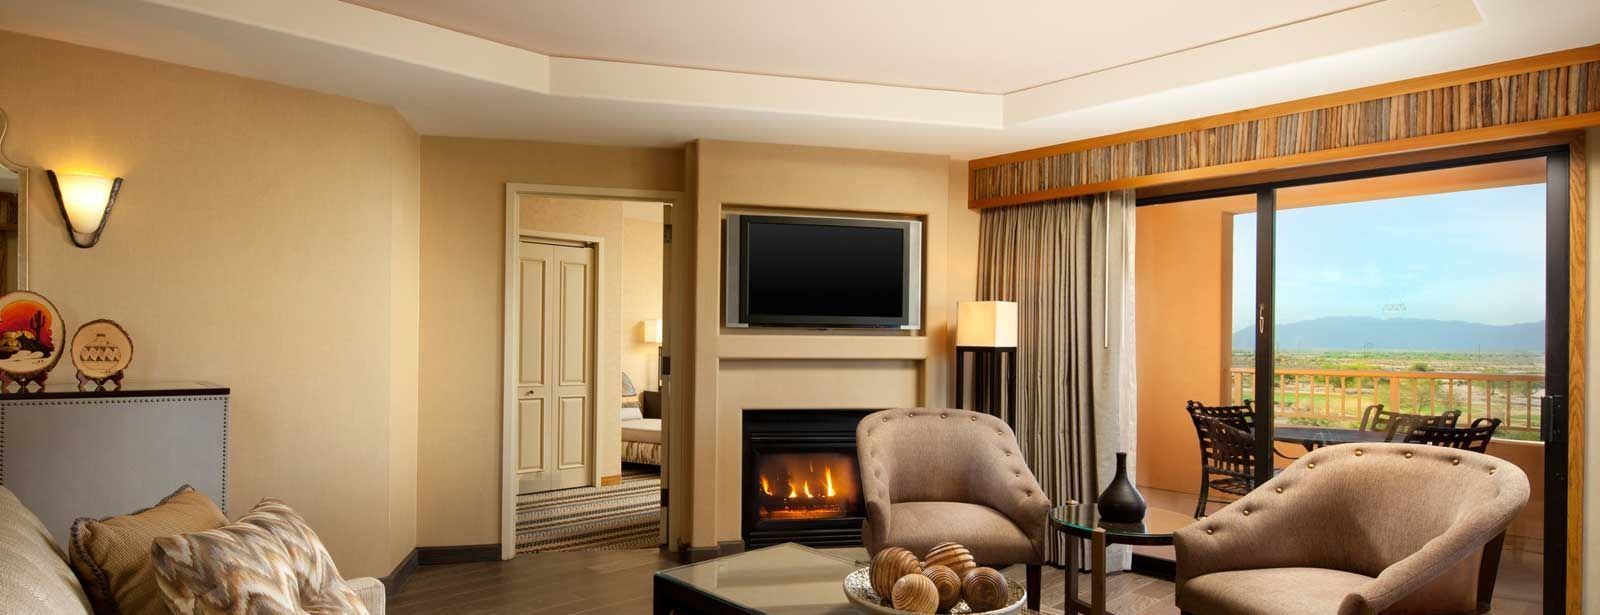 Sheraton Wild Horse Pass Resort & Spa - Governor's Suite